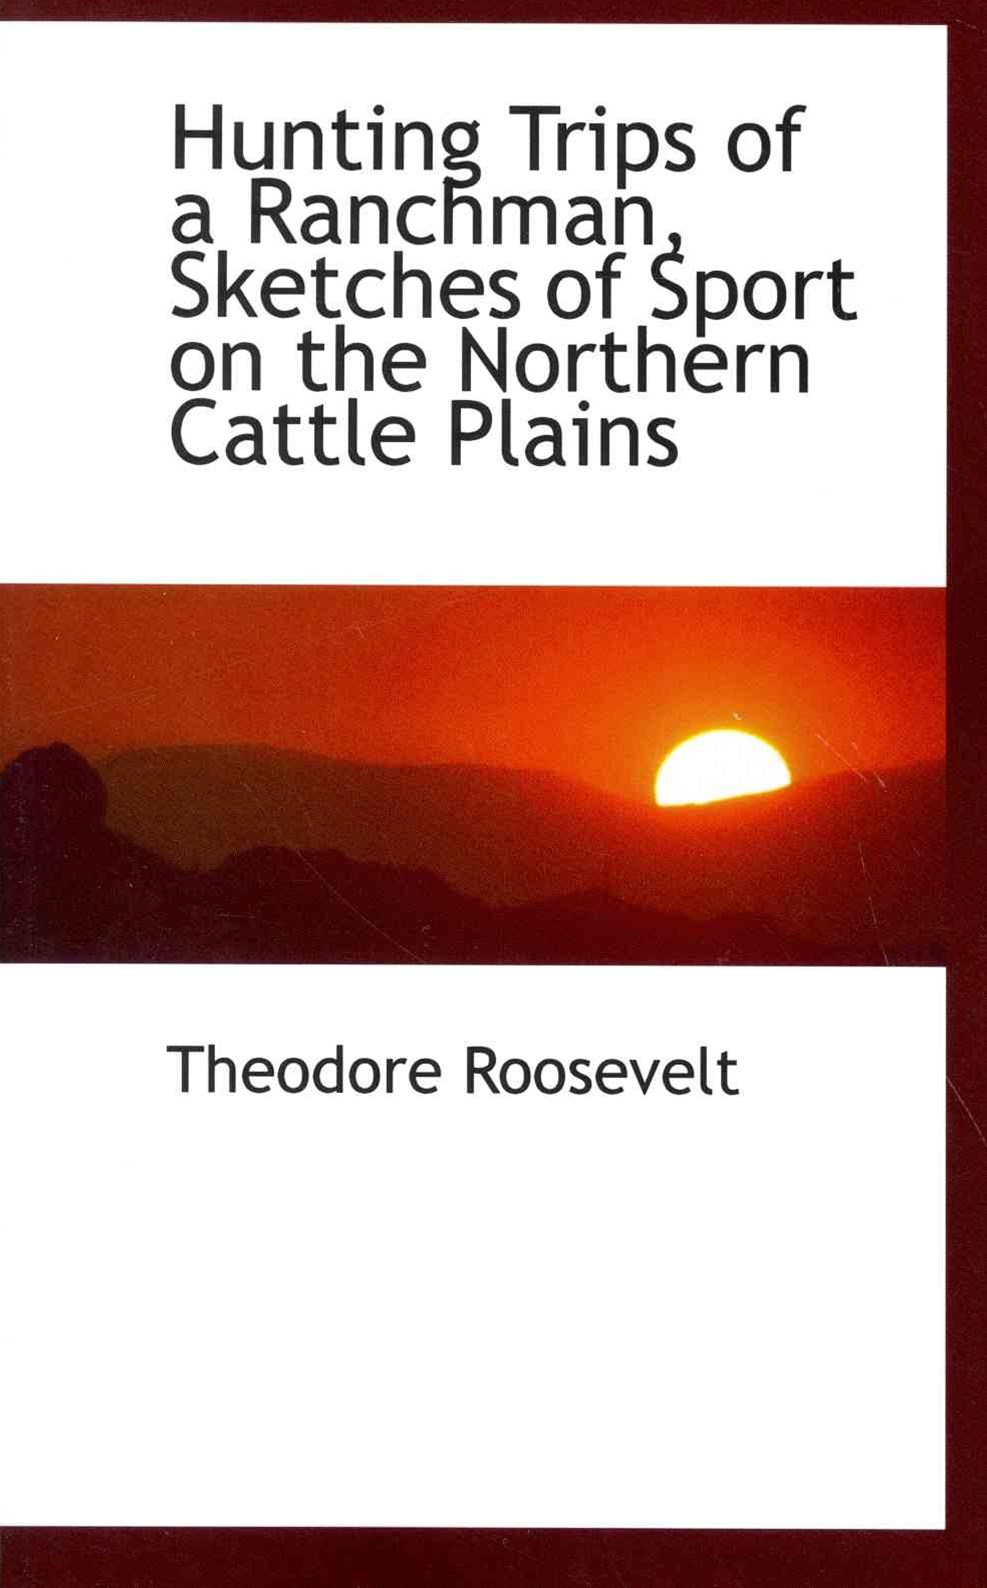 Hunting Trips of a Ranchman, Sketches of Sport on the Northern Cattle Plains